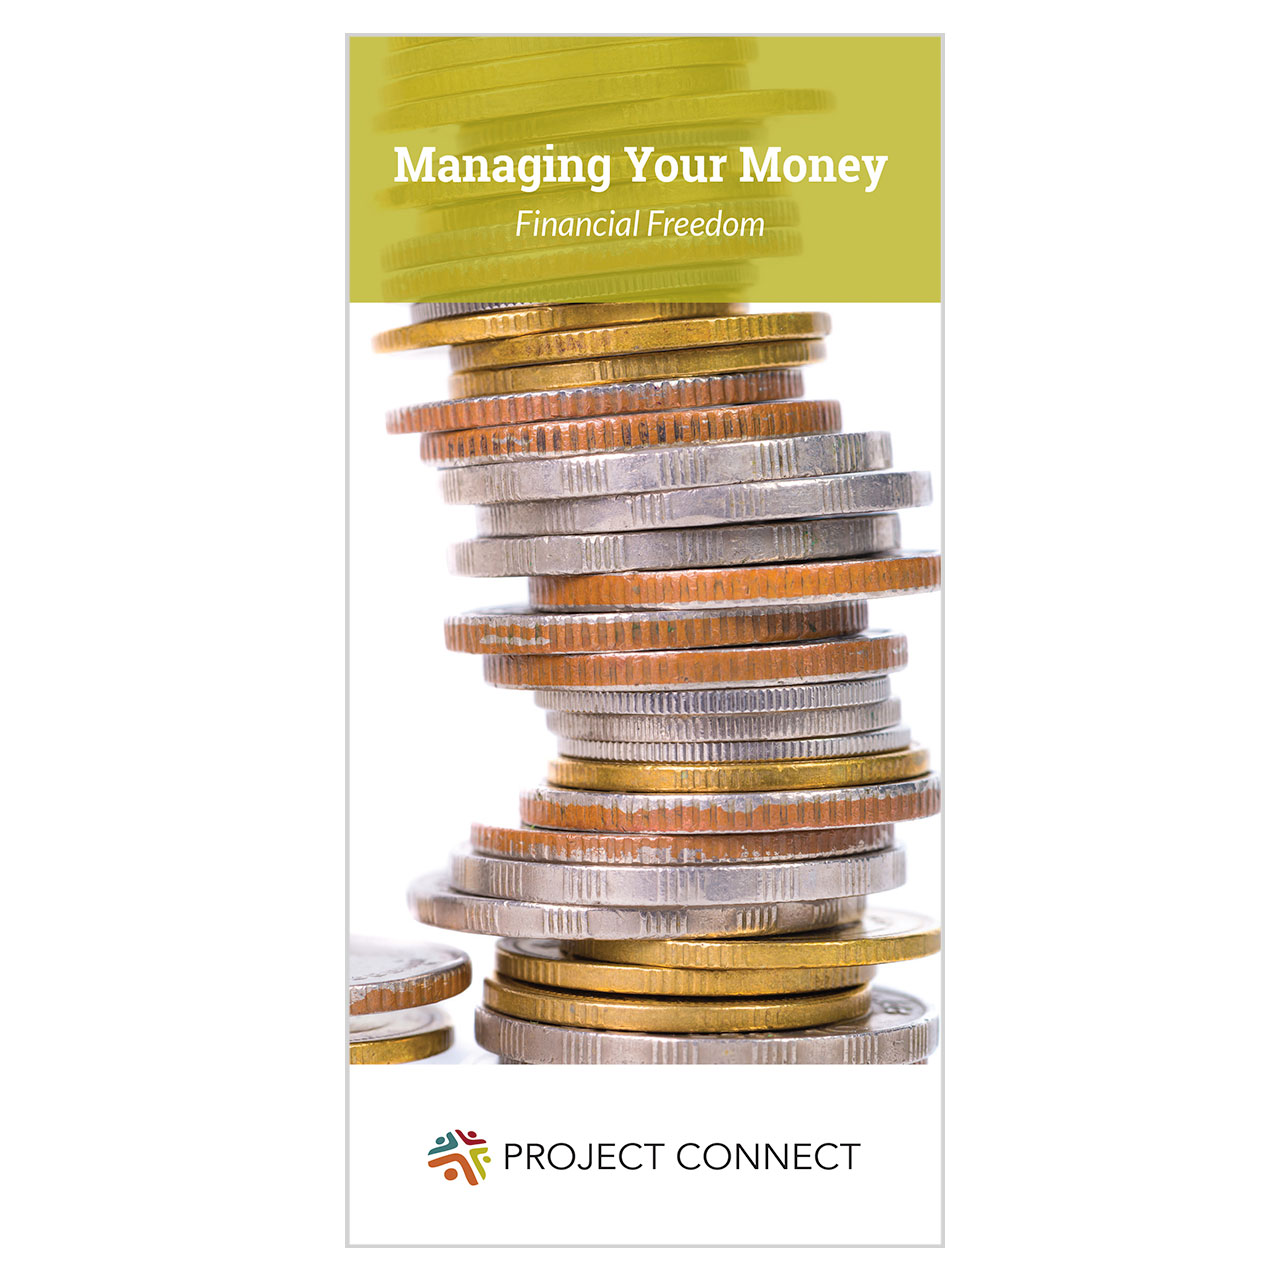 Managing Your Money Financial Freedom